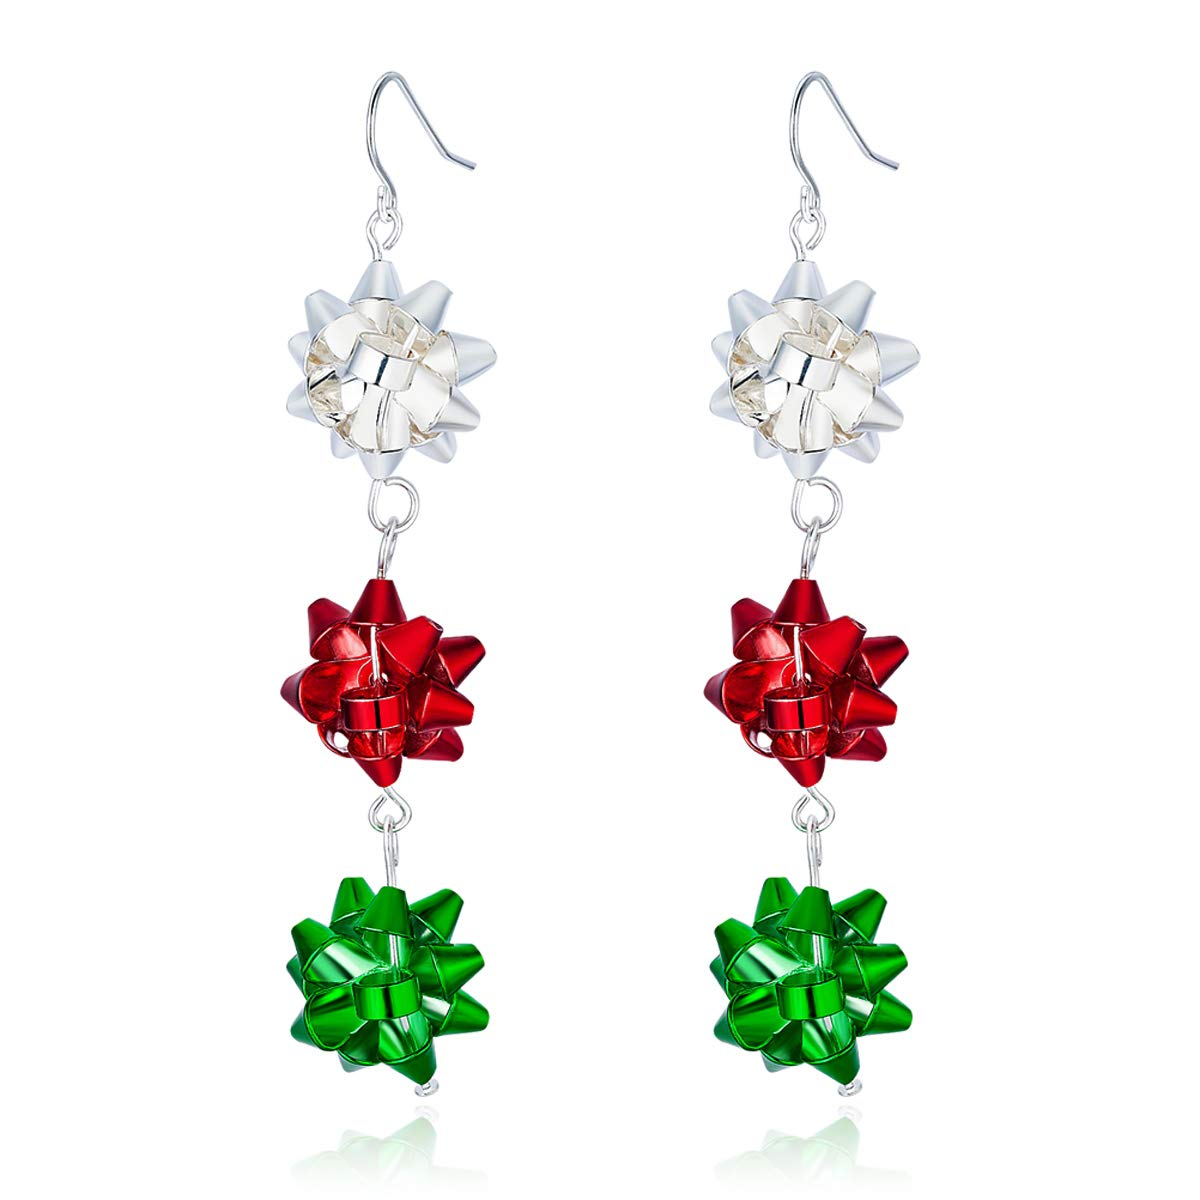 Christmas Bows Flower Piercing Dangle Earrings Red Green White Silver Plated Women Girls Holiday Gift RareLove ANELX05